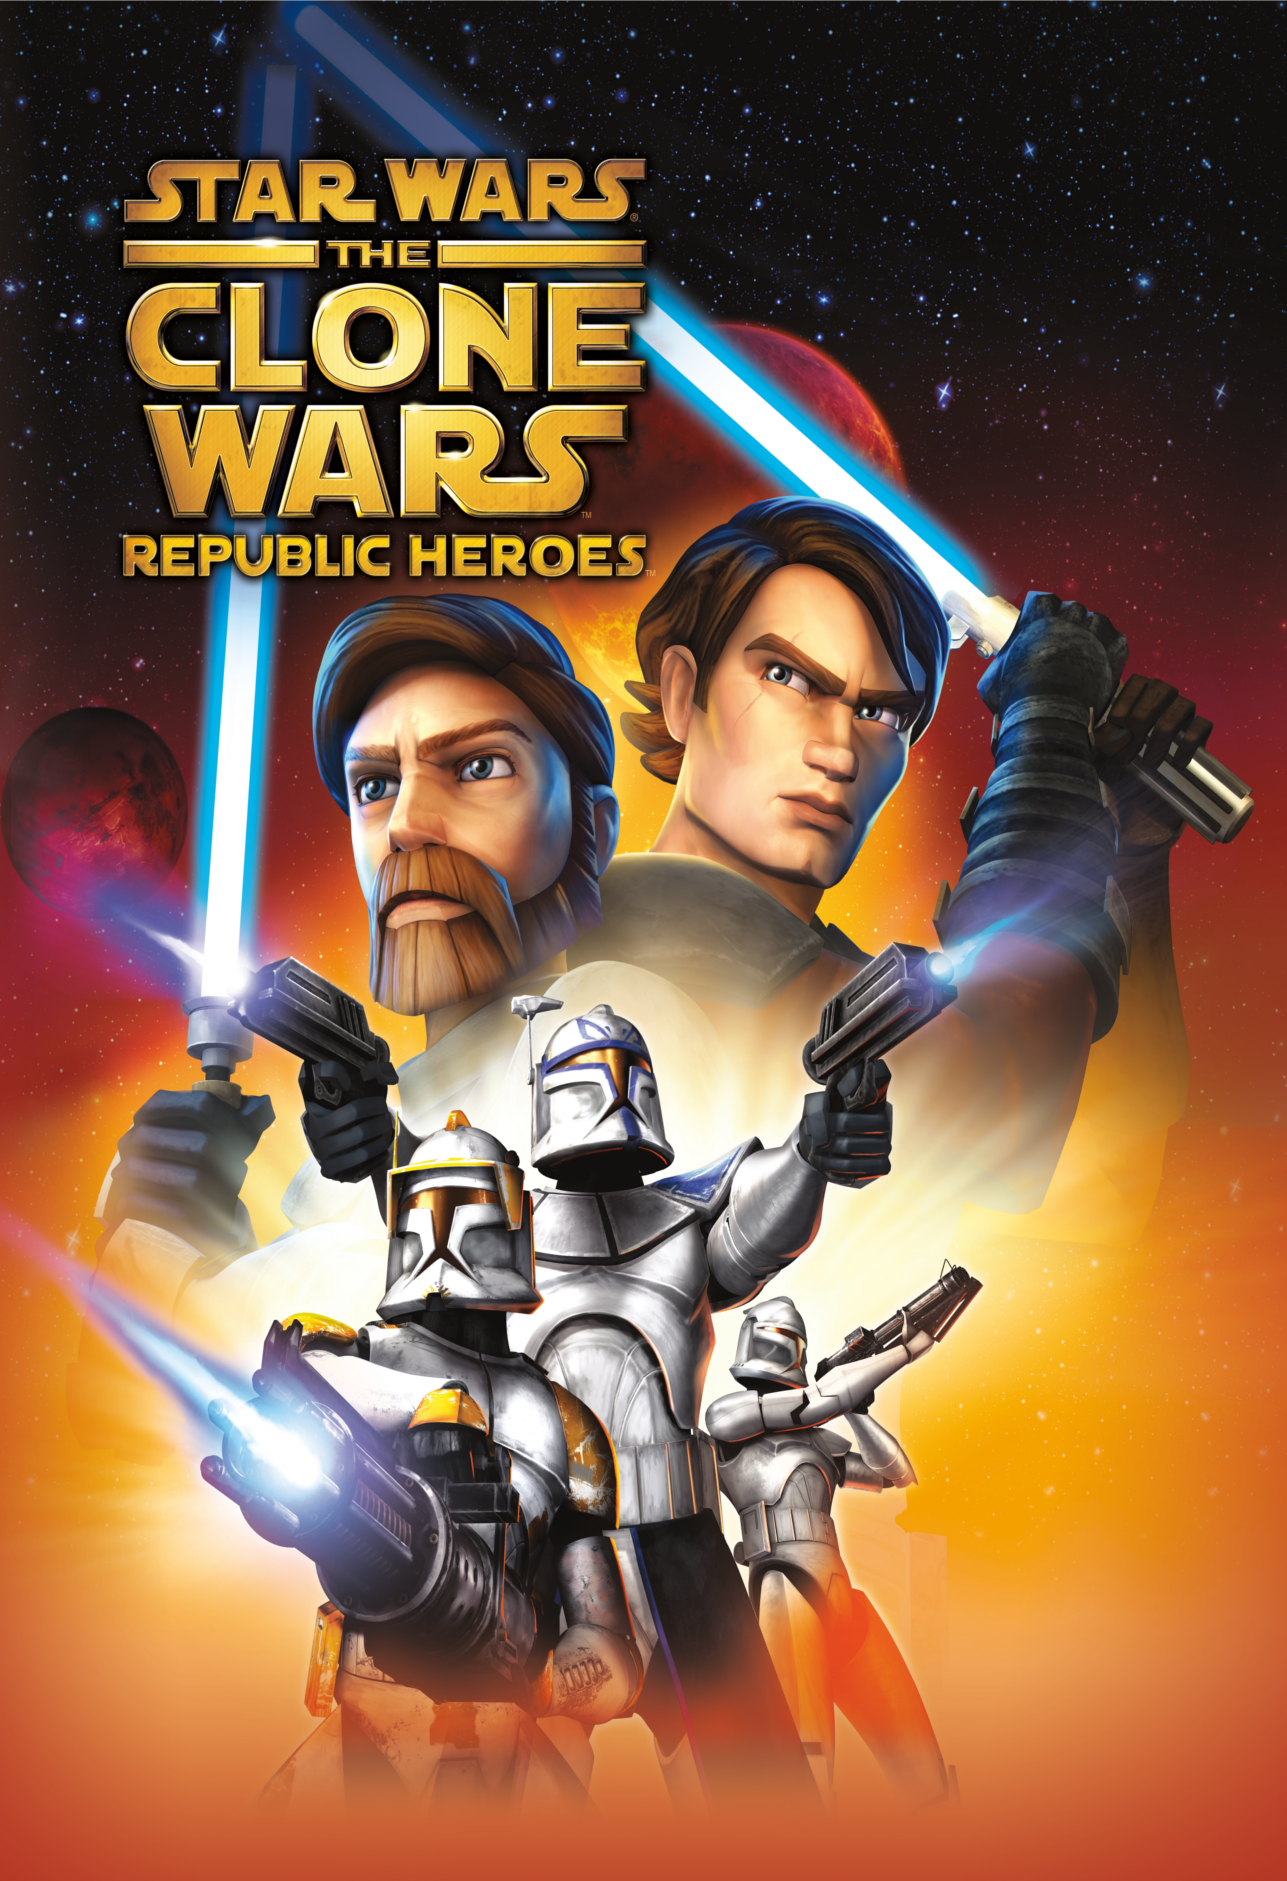 star wars the clone wars republic heroes  swgames the